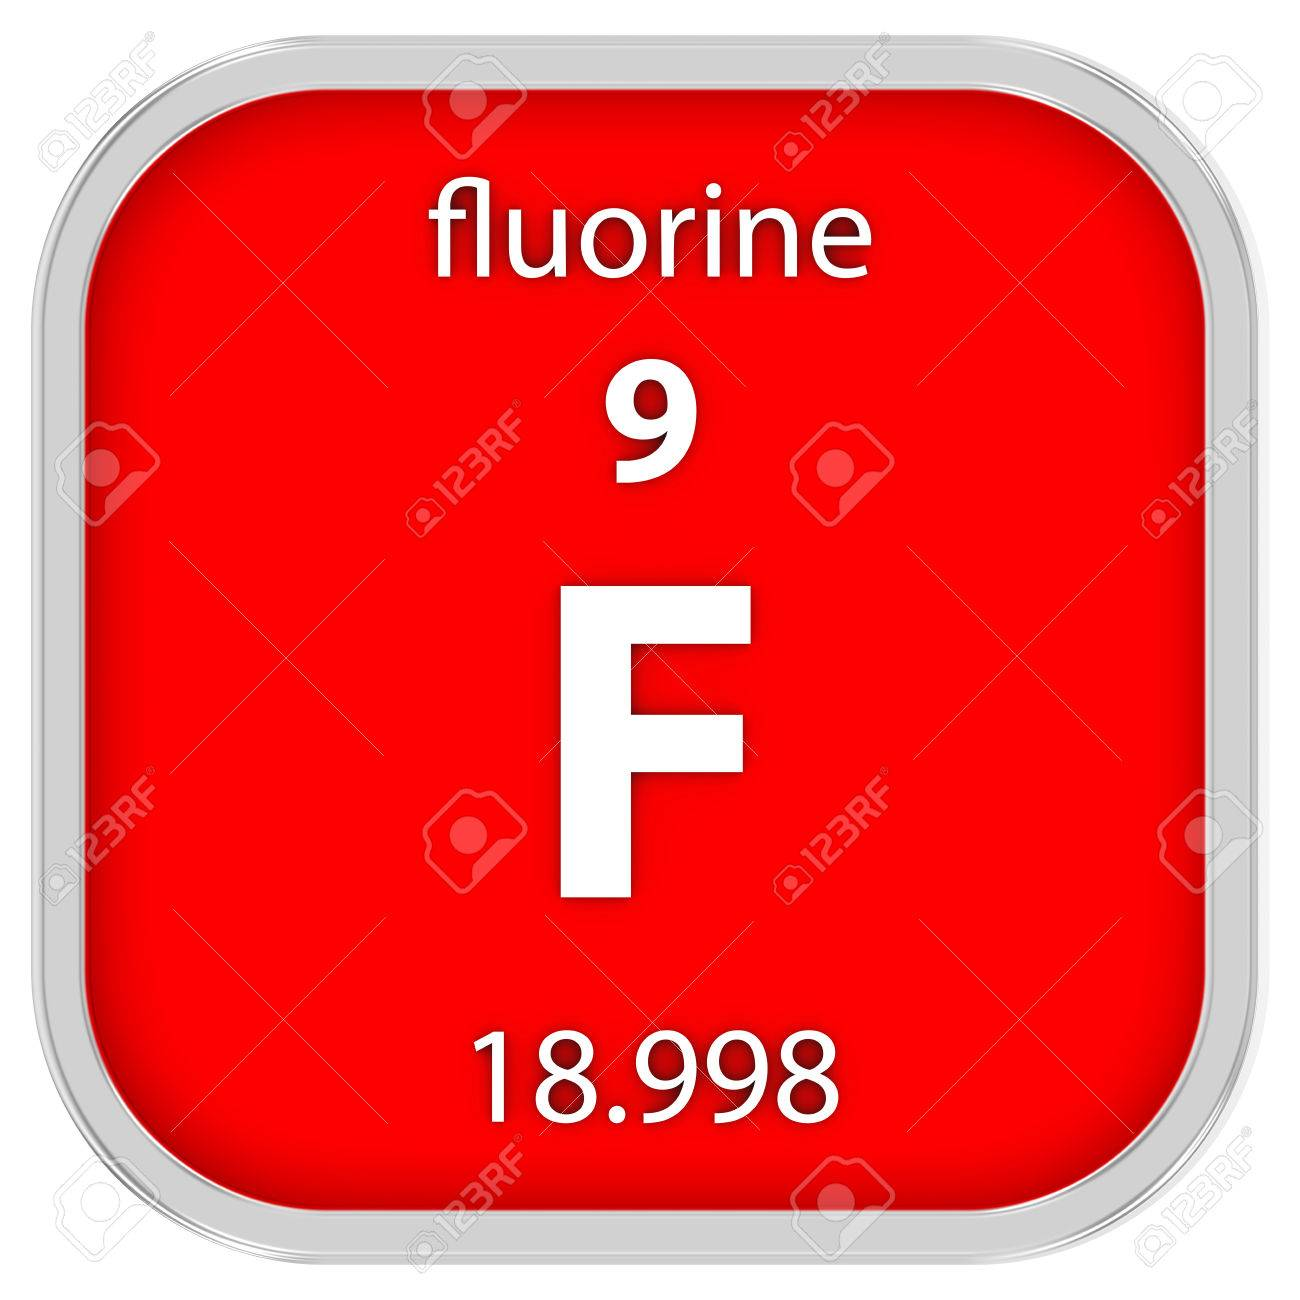 Symbol for diamond on periodic table choice image periodic table what is the symbol for fluorine on the periodic table gallery indium symbol periodic table gallery gamestrikefo Gallery